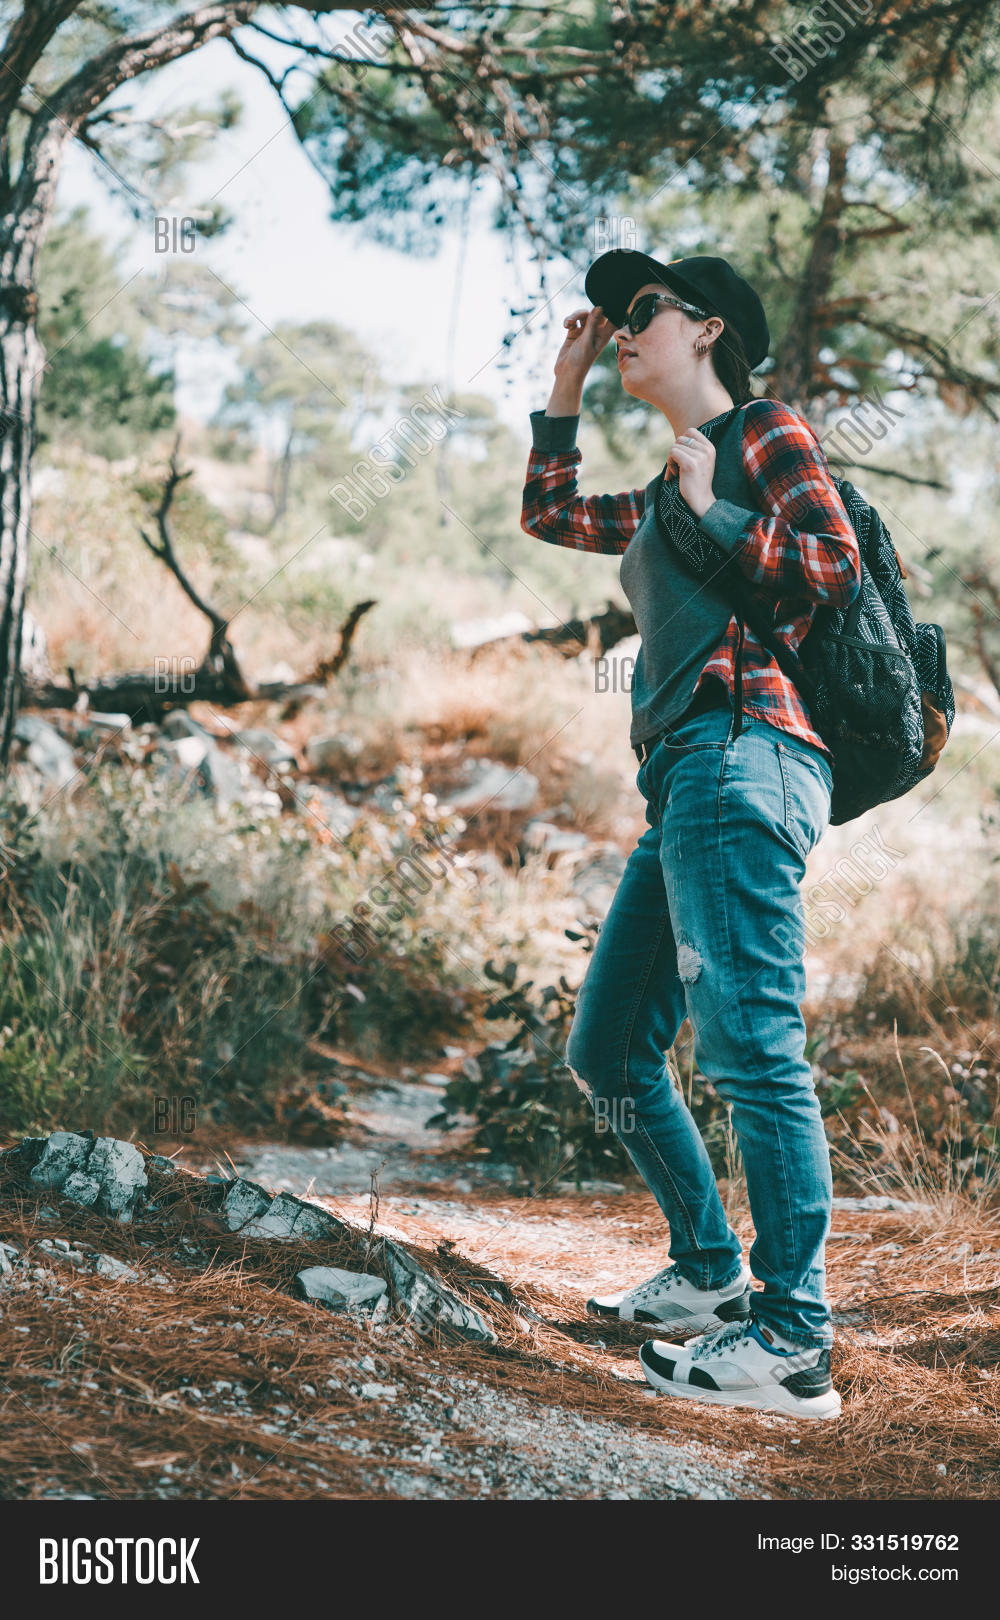 Tourism And Outdoor Activities. A Woman In A Cap And Glasses, With A Backpack On Her Back, Is Lookin